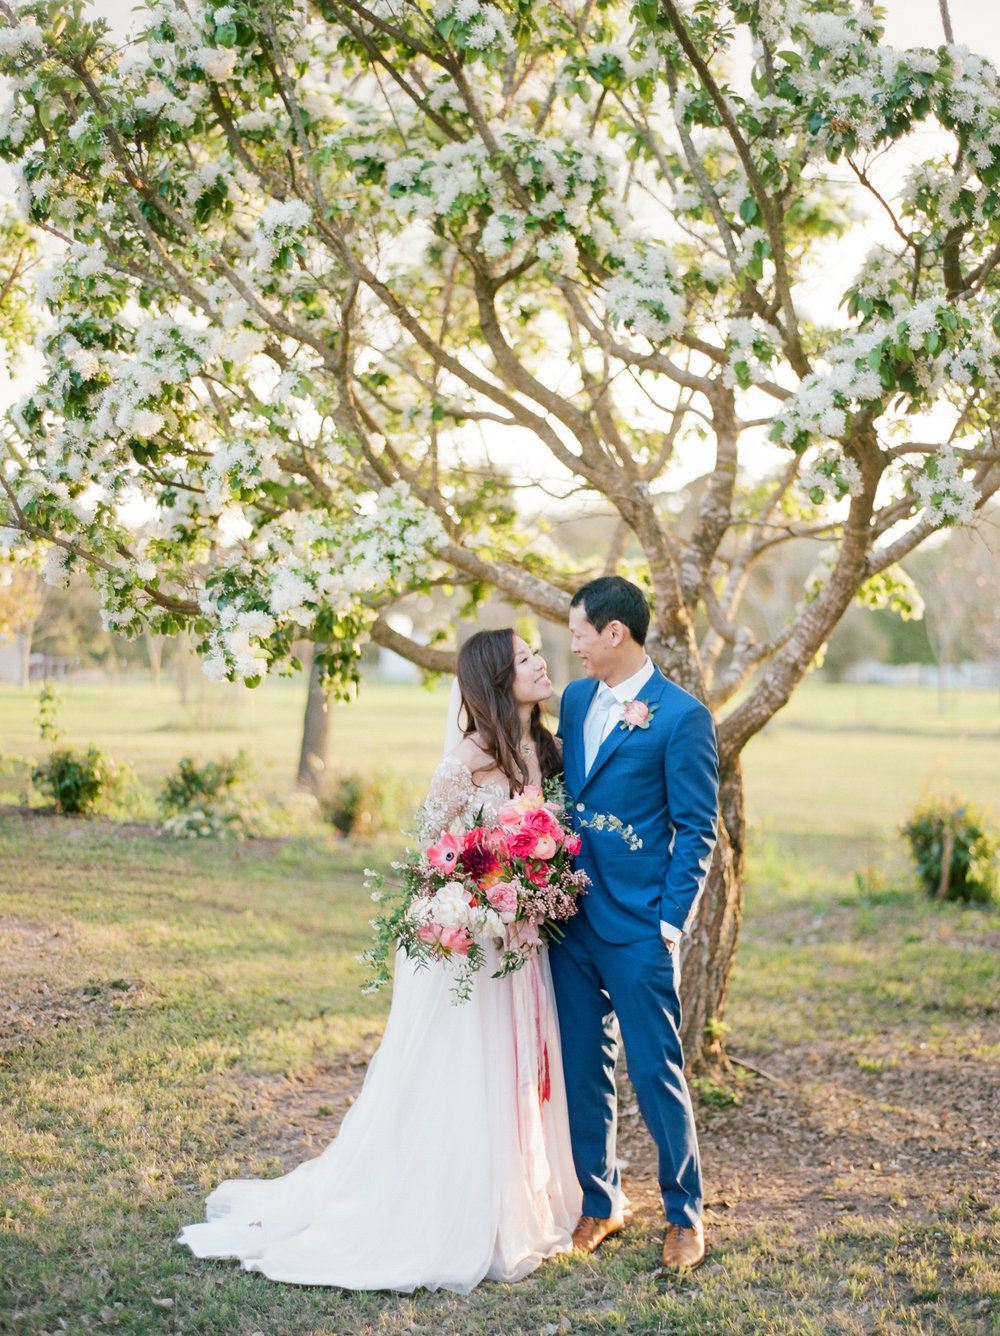 The-Knot-50-Weddings-50-States-Texas-Winner-Dana-Fernandez-photography-houston-wedding-photographer-film-fine-art-destination-1.jpg